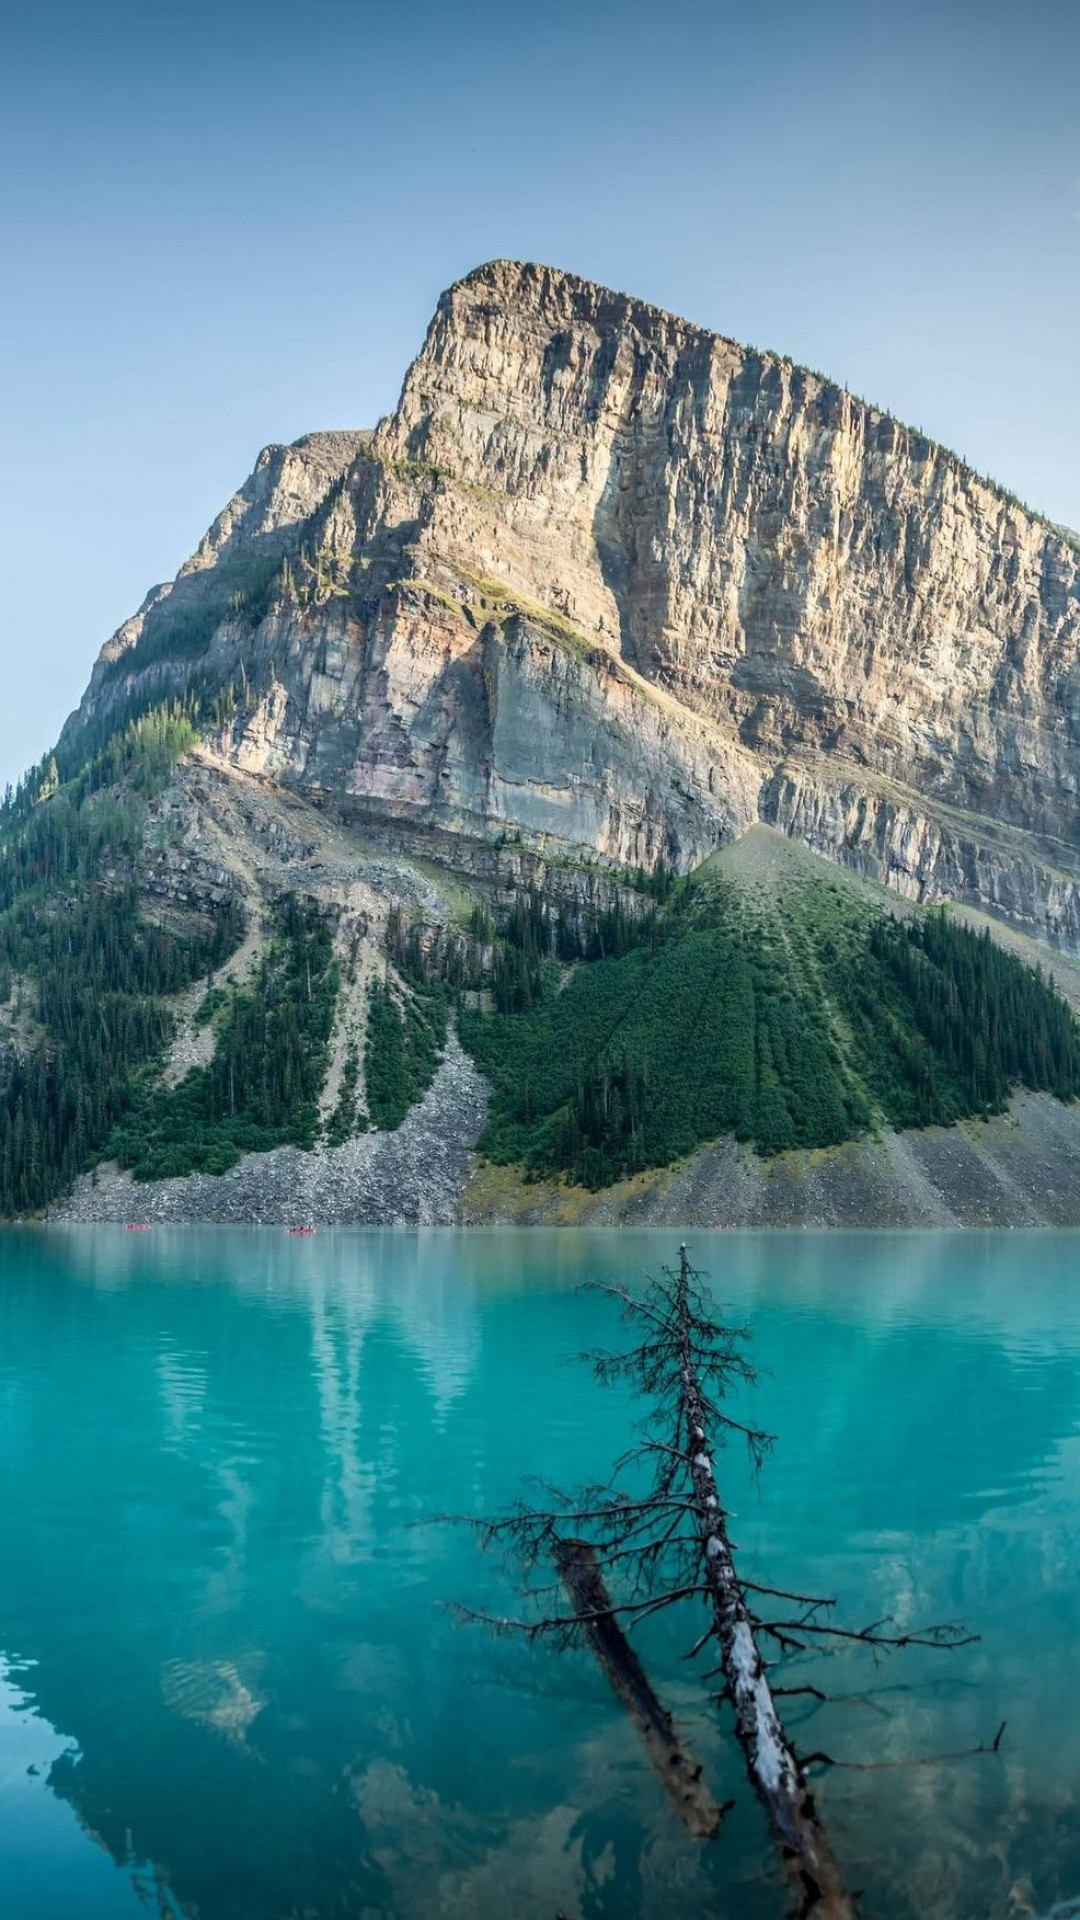 Wallpaper Lake Louise 4k Hd Wallpaper Сanada Travel